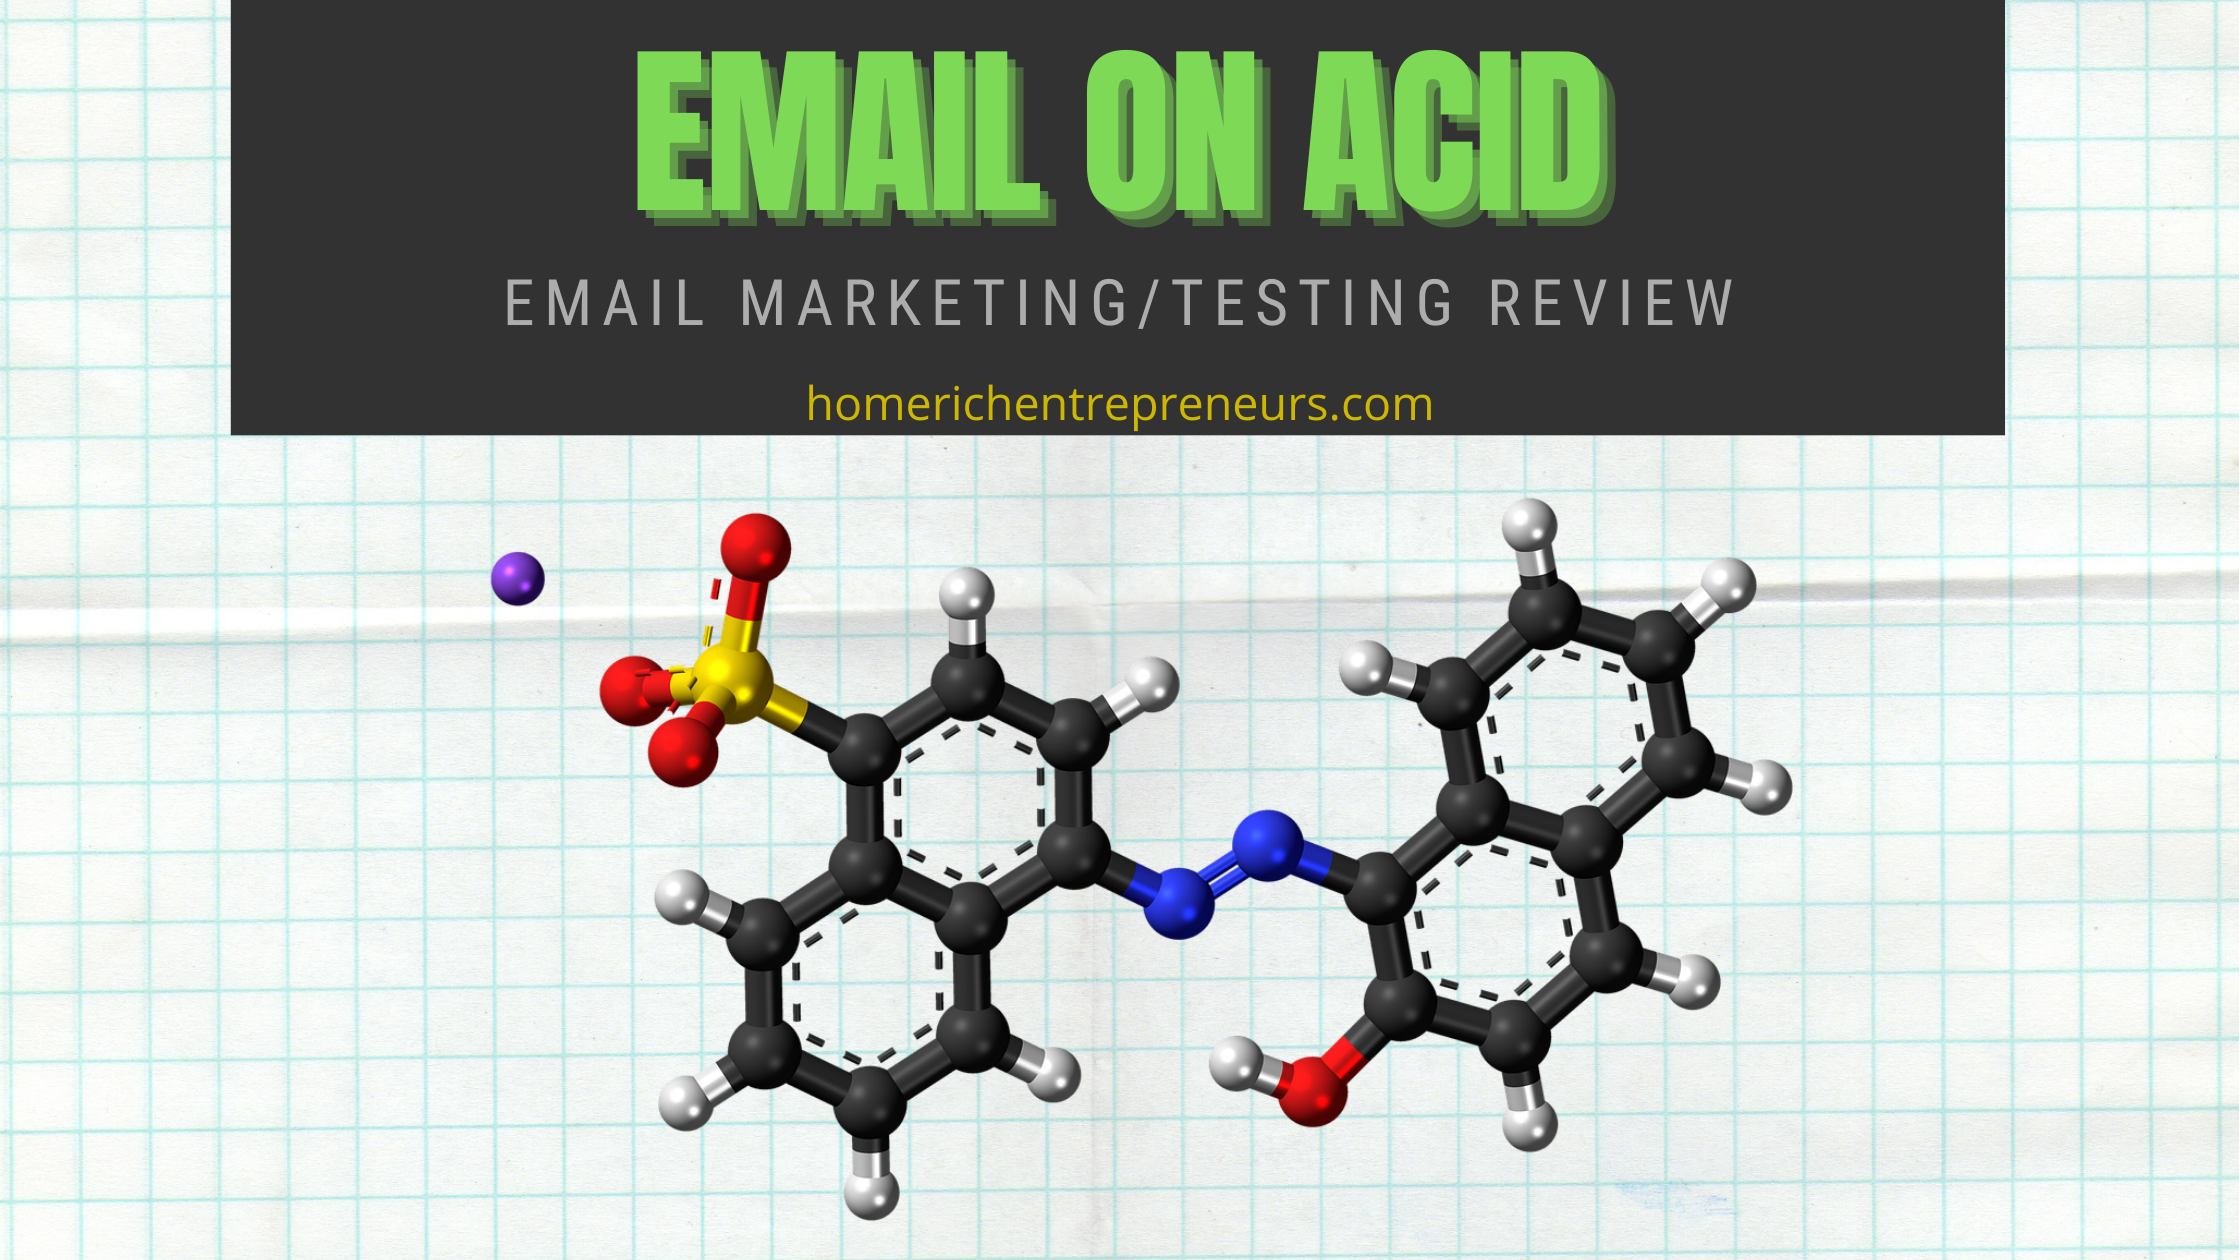 What is Email on Acid